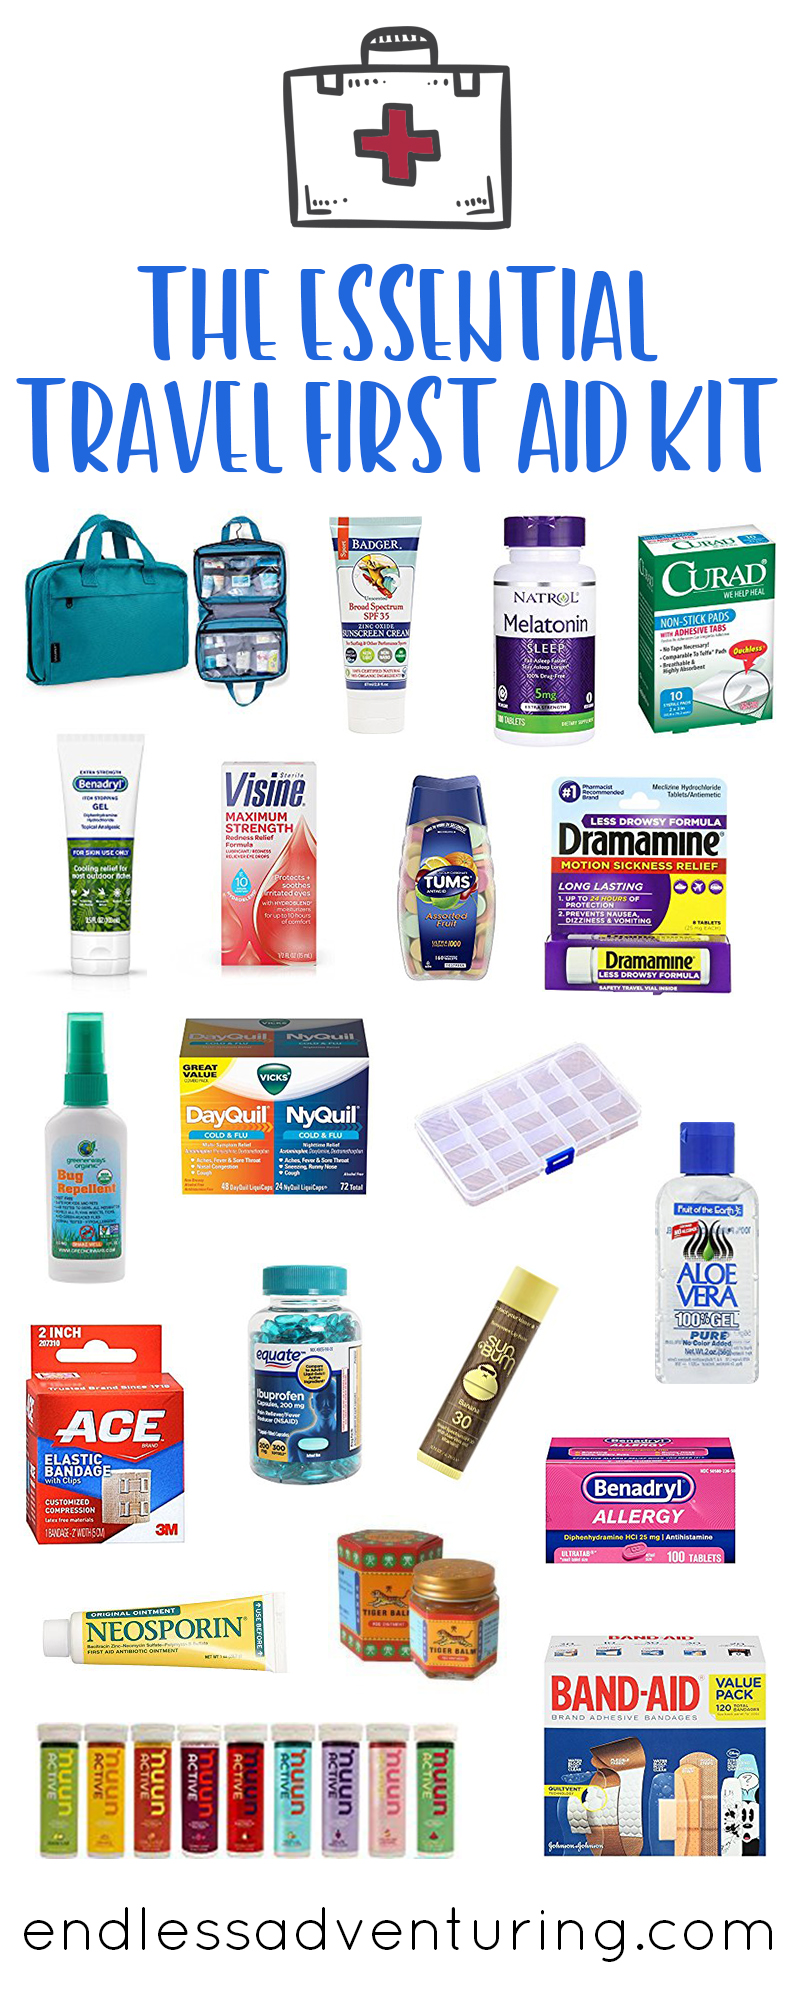 The Essential Travel First Aid Kit